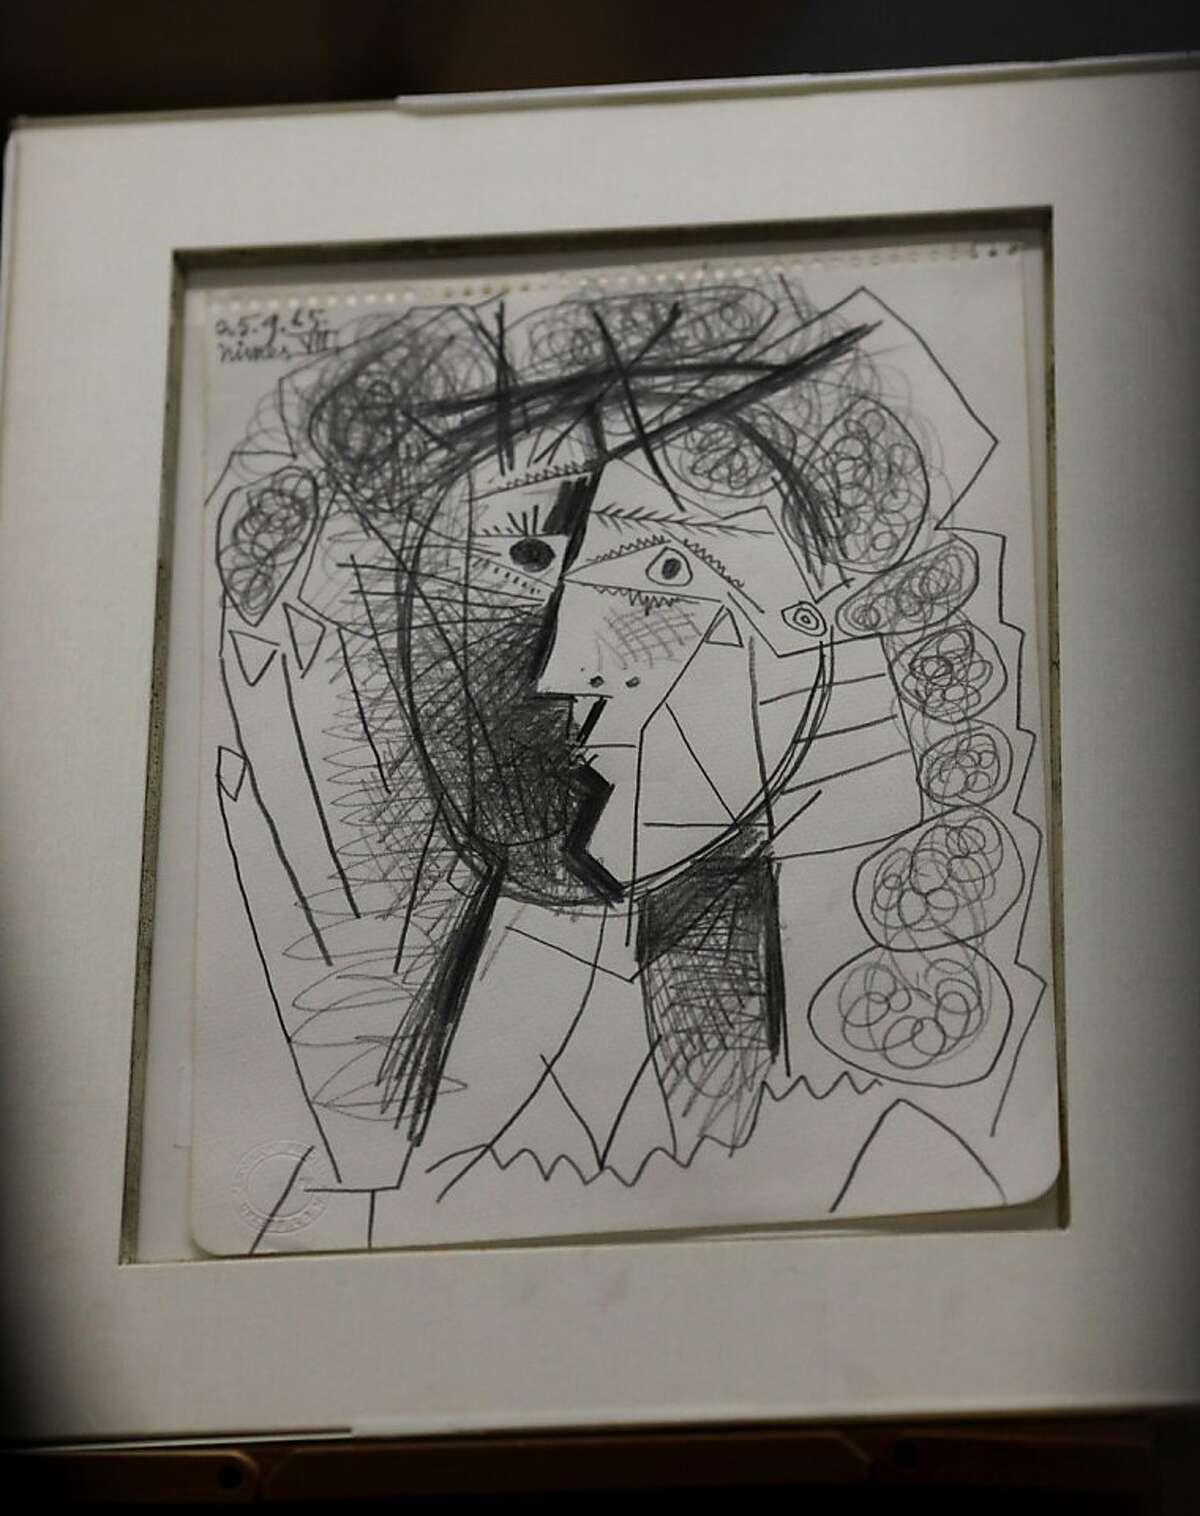 The stolen Picasso sketch was on display at the press conference. The San Francisco police department announced the recovery of a Picasso sketch Thursday July 7, 2011. The sketch was stolen from a San Francisco, Calif. gallery earlier this week.